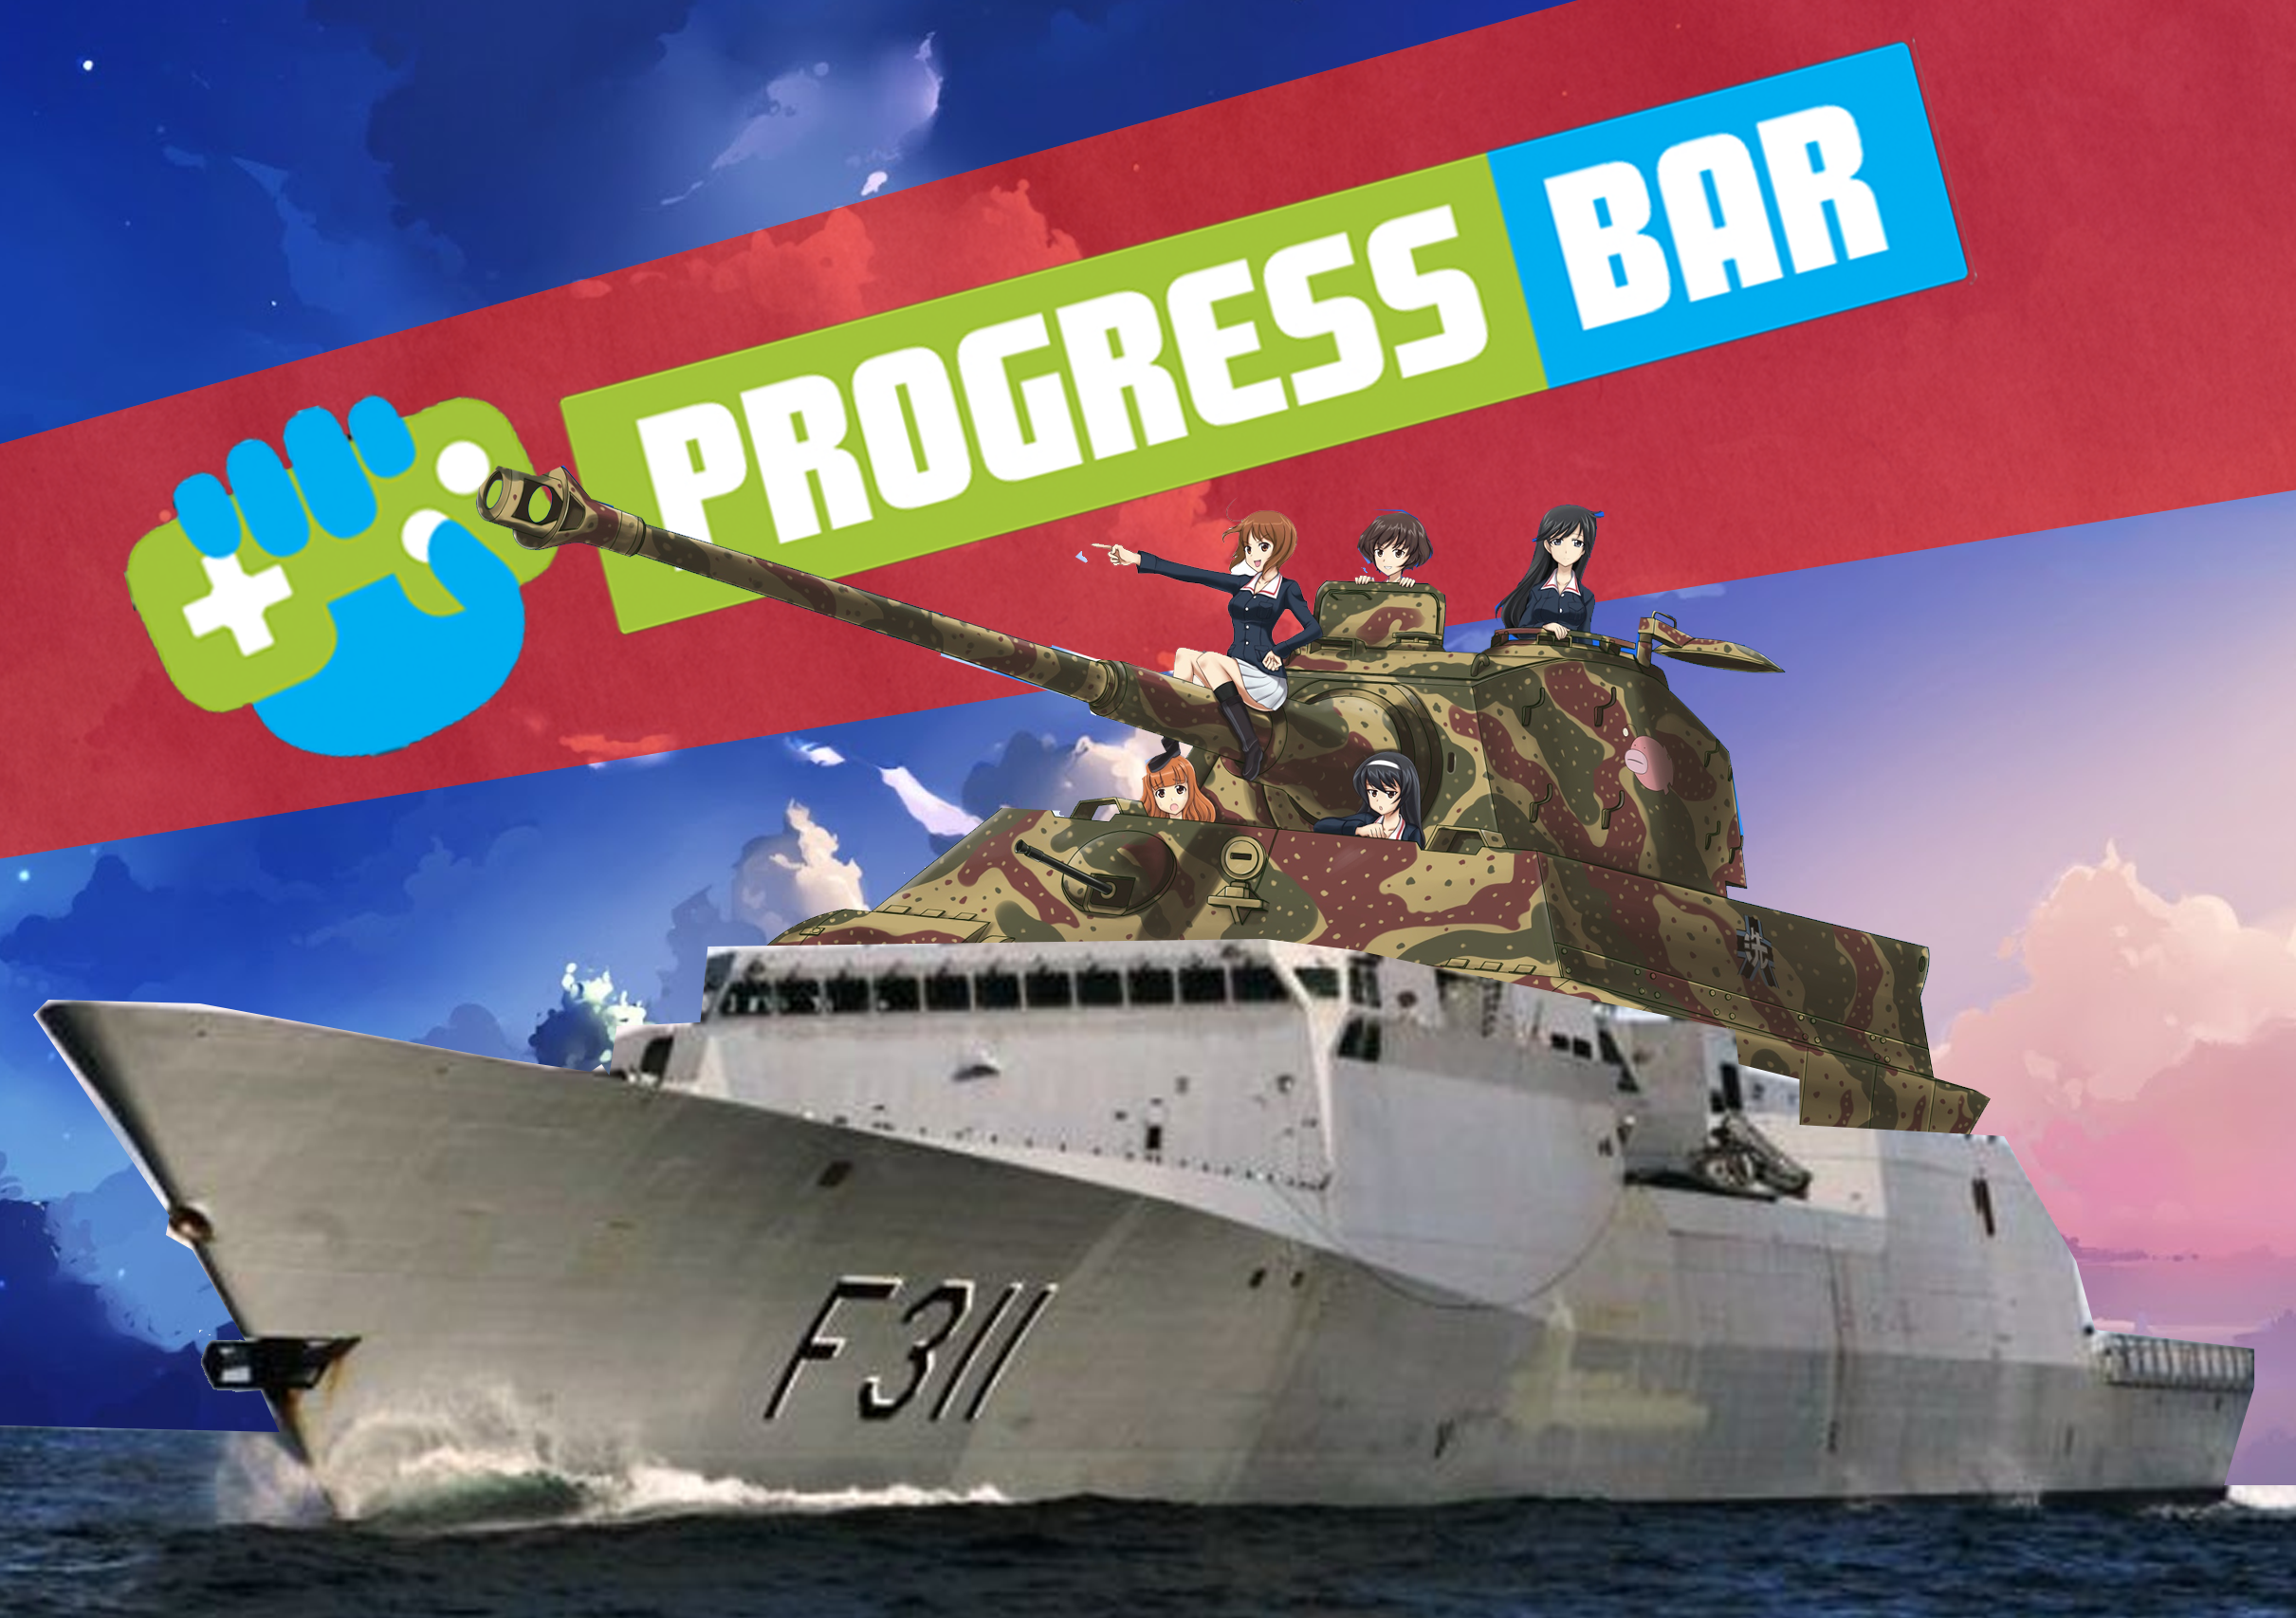 Progress Bar Und Panzer